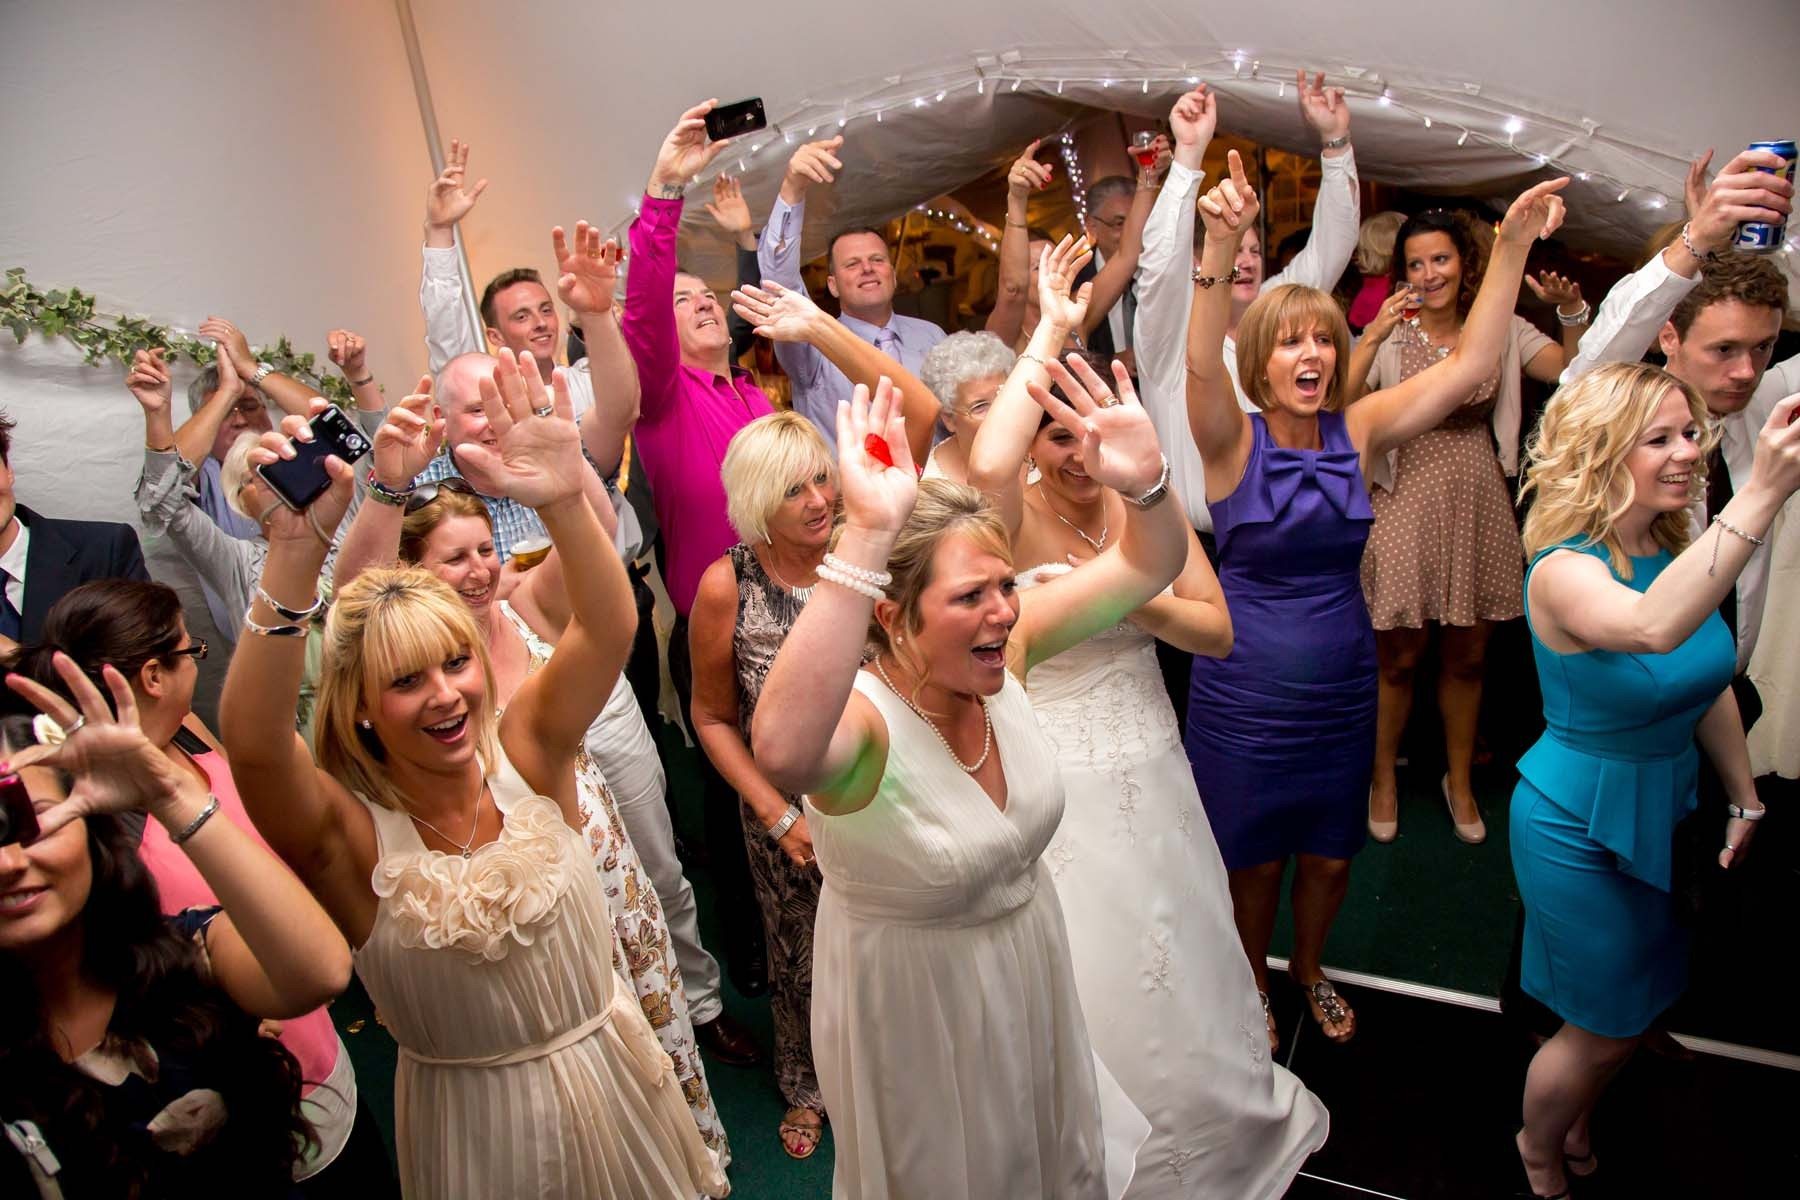 Sussex & Surrey Wedding Photographer - Guests & Groups (28)